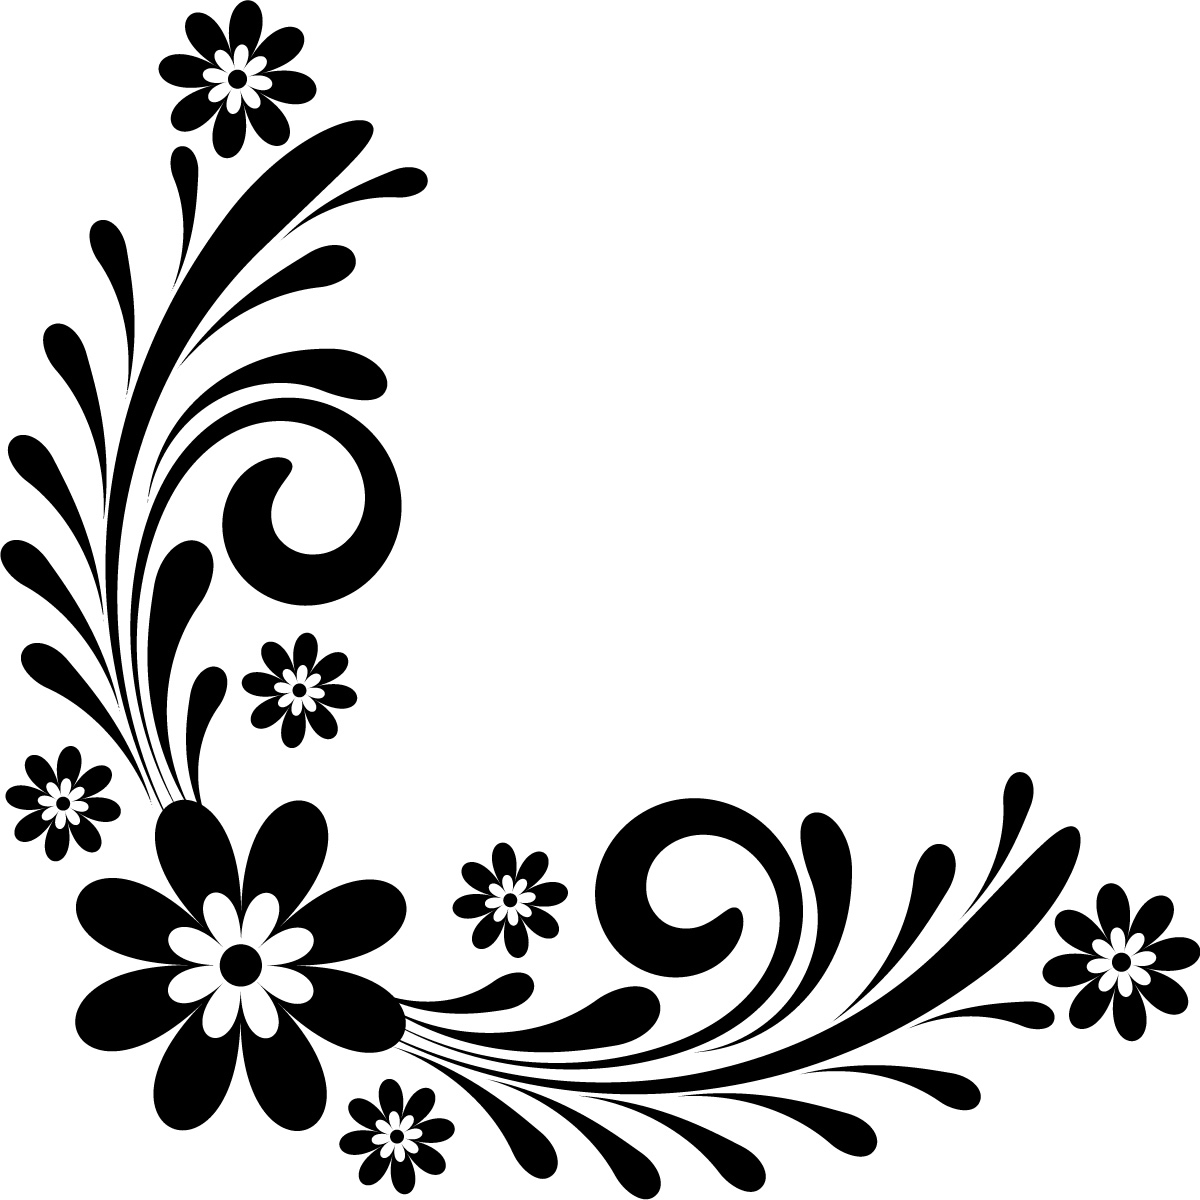 Black and white flower design clipart free download best for Pictures of designs